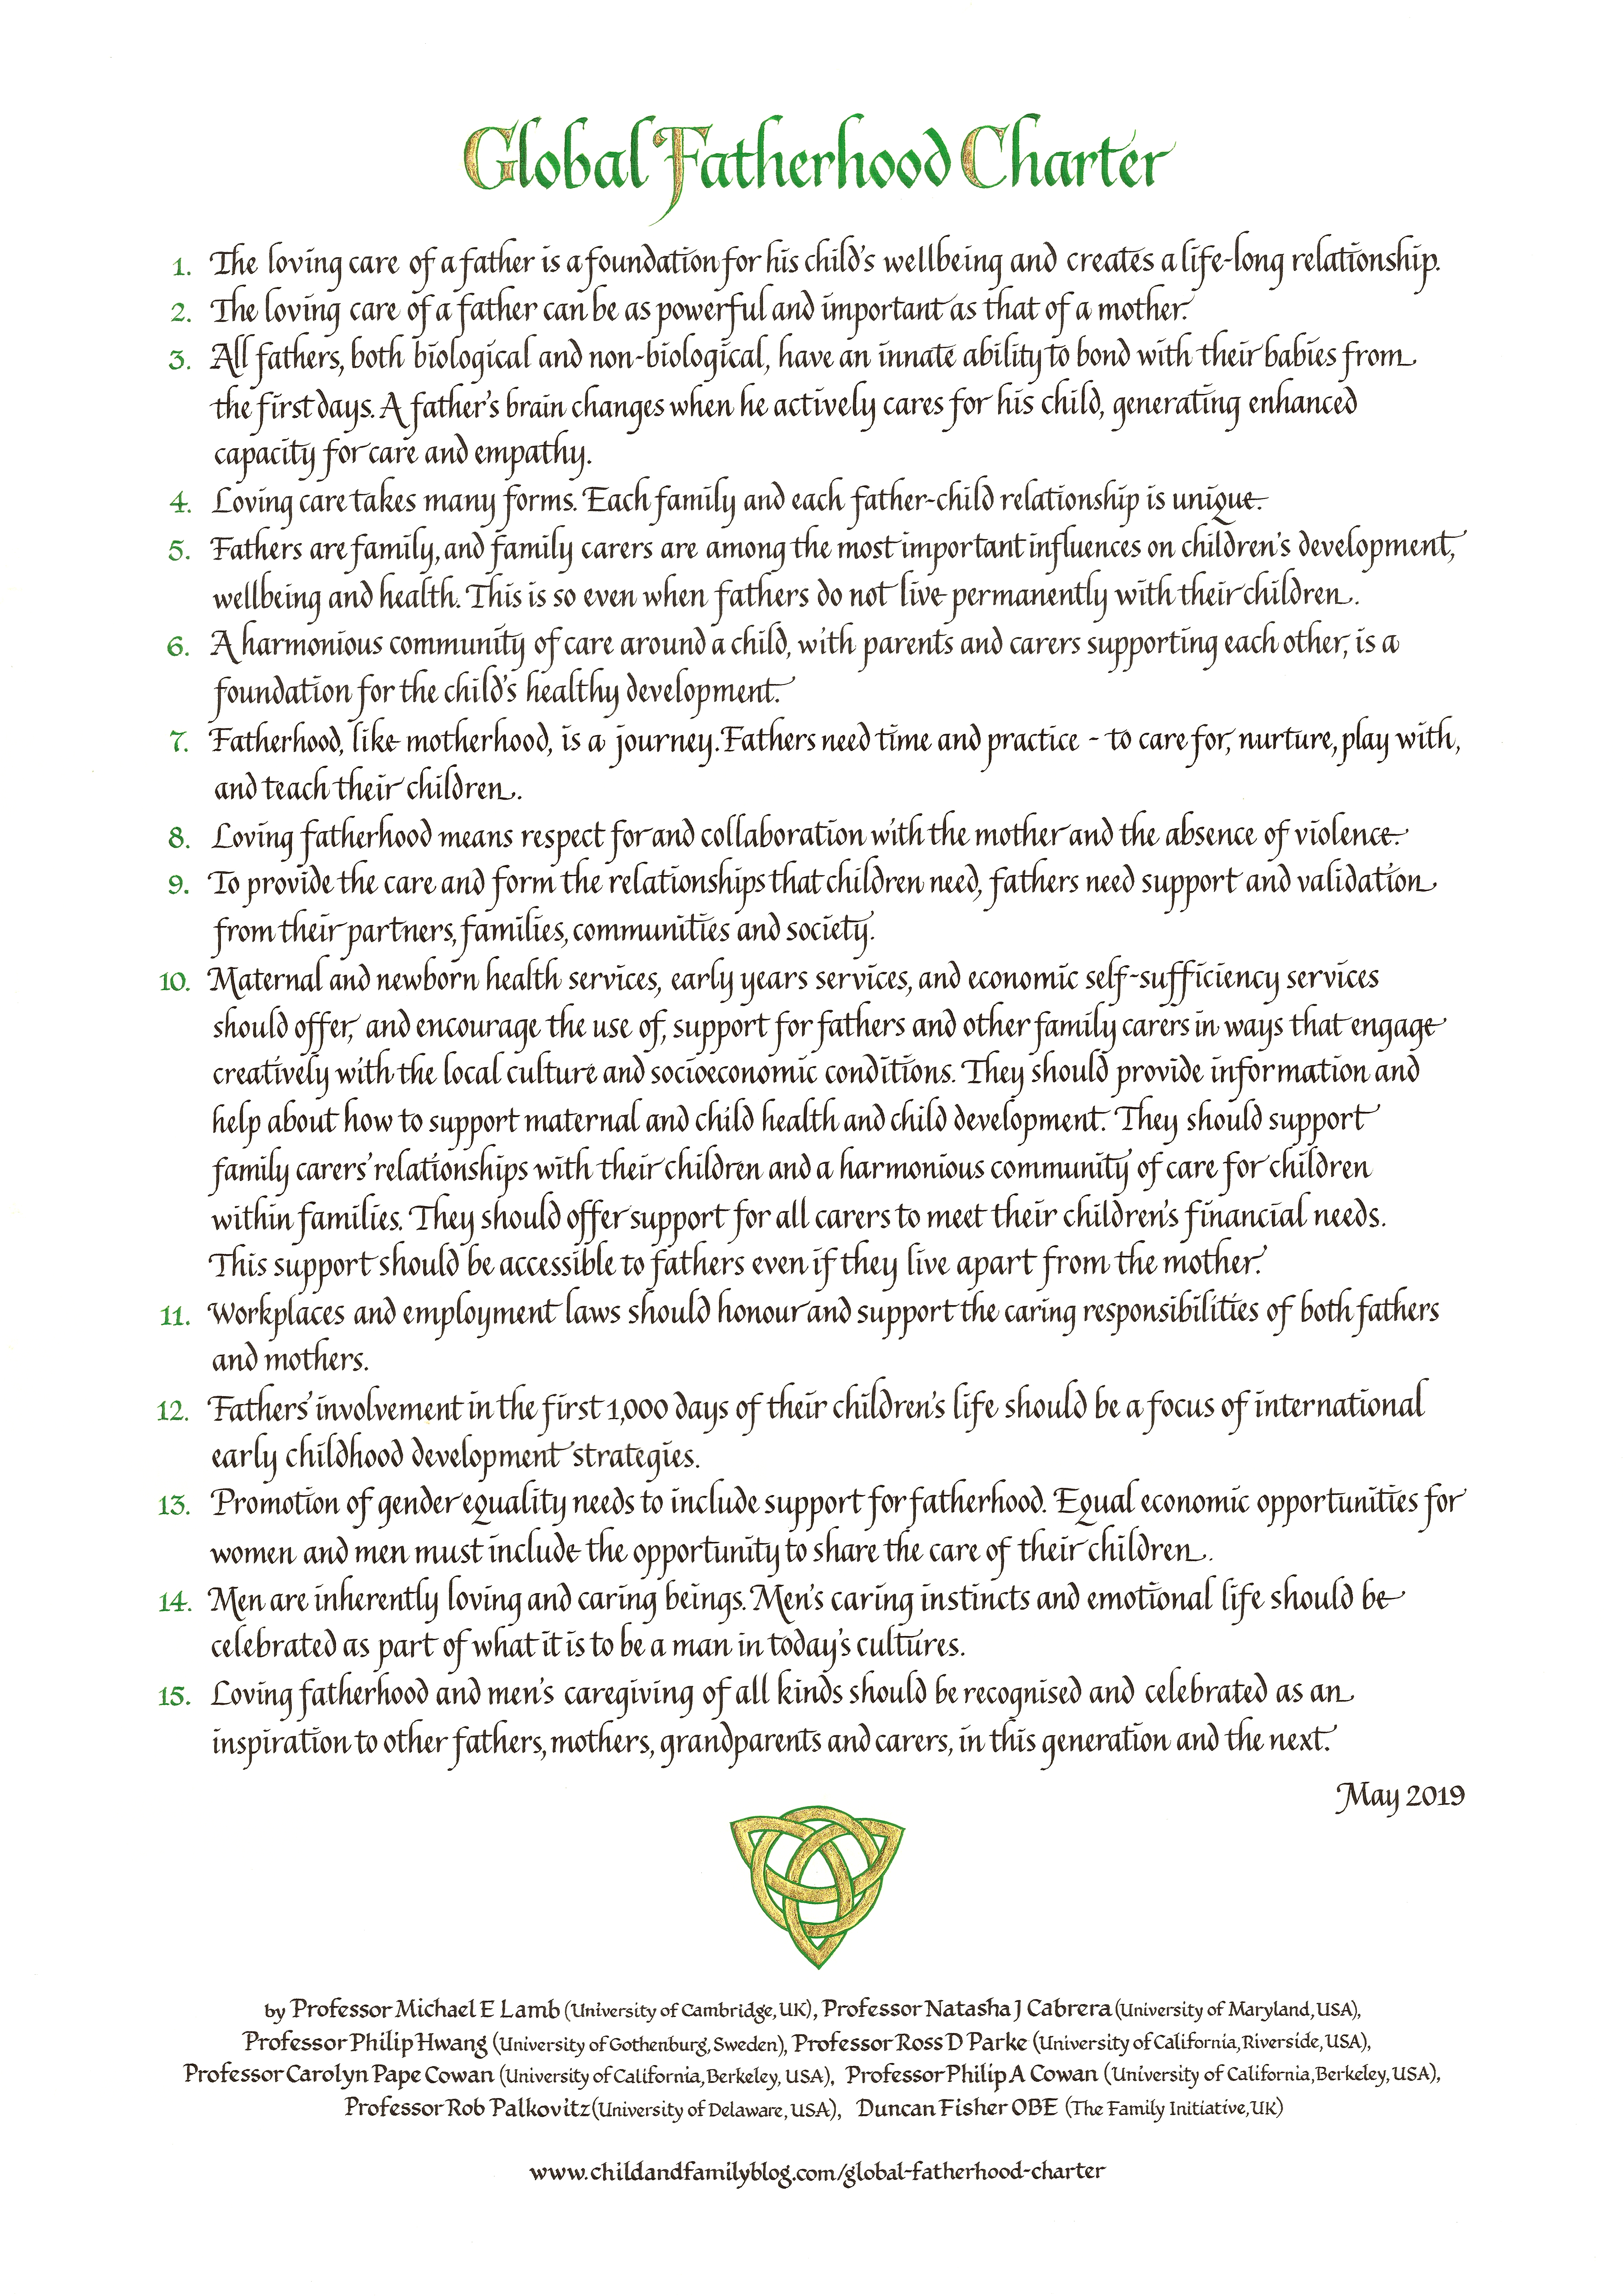 Global Fatherhood Charter